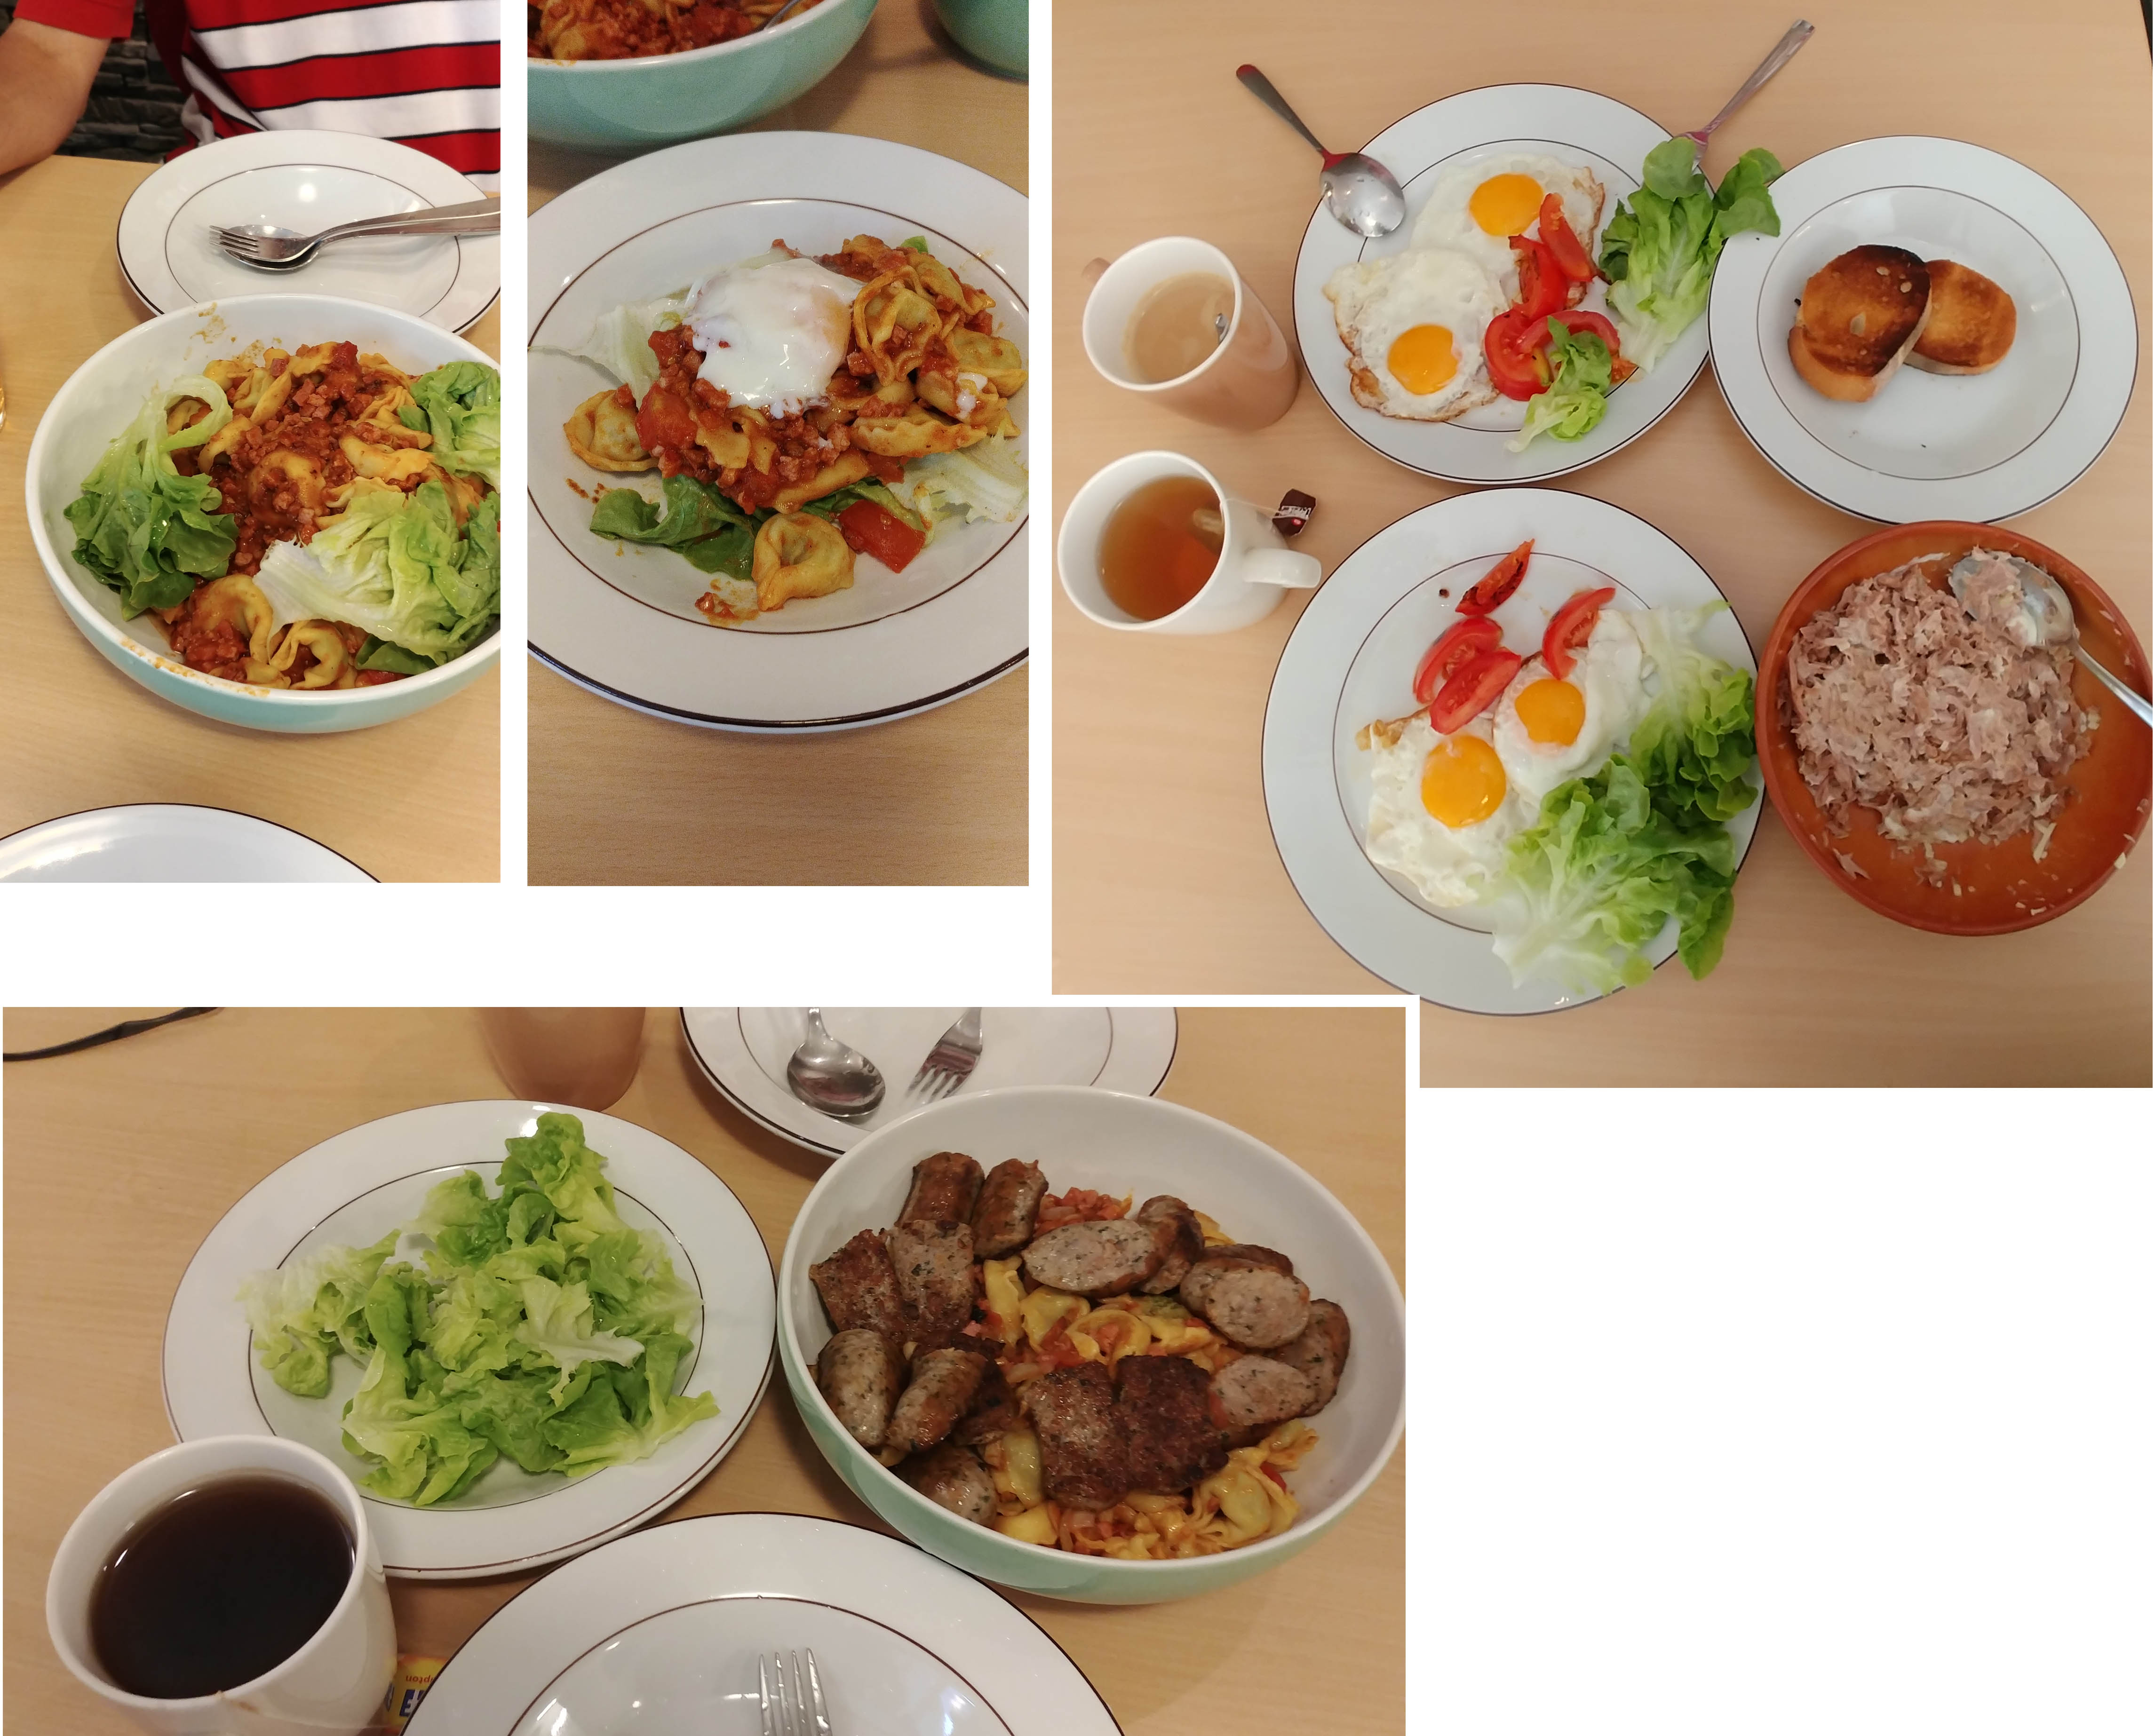 Our homecooked meals at Valley Hostel